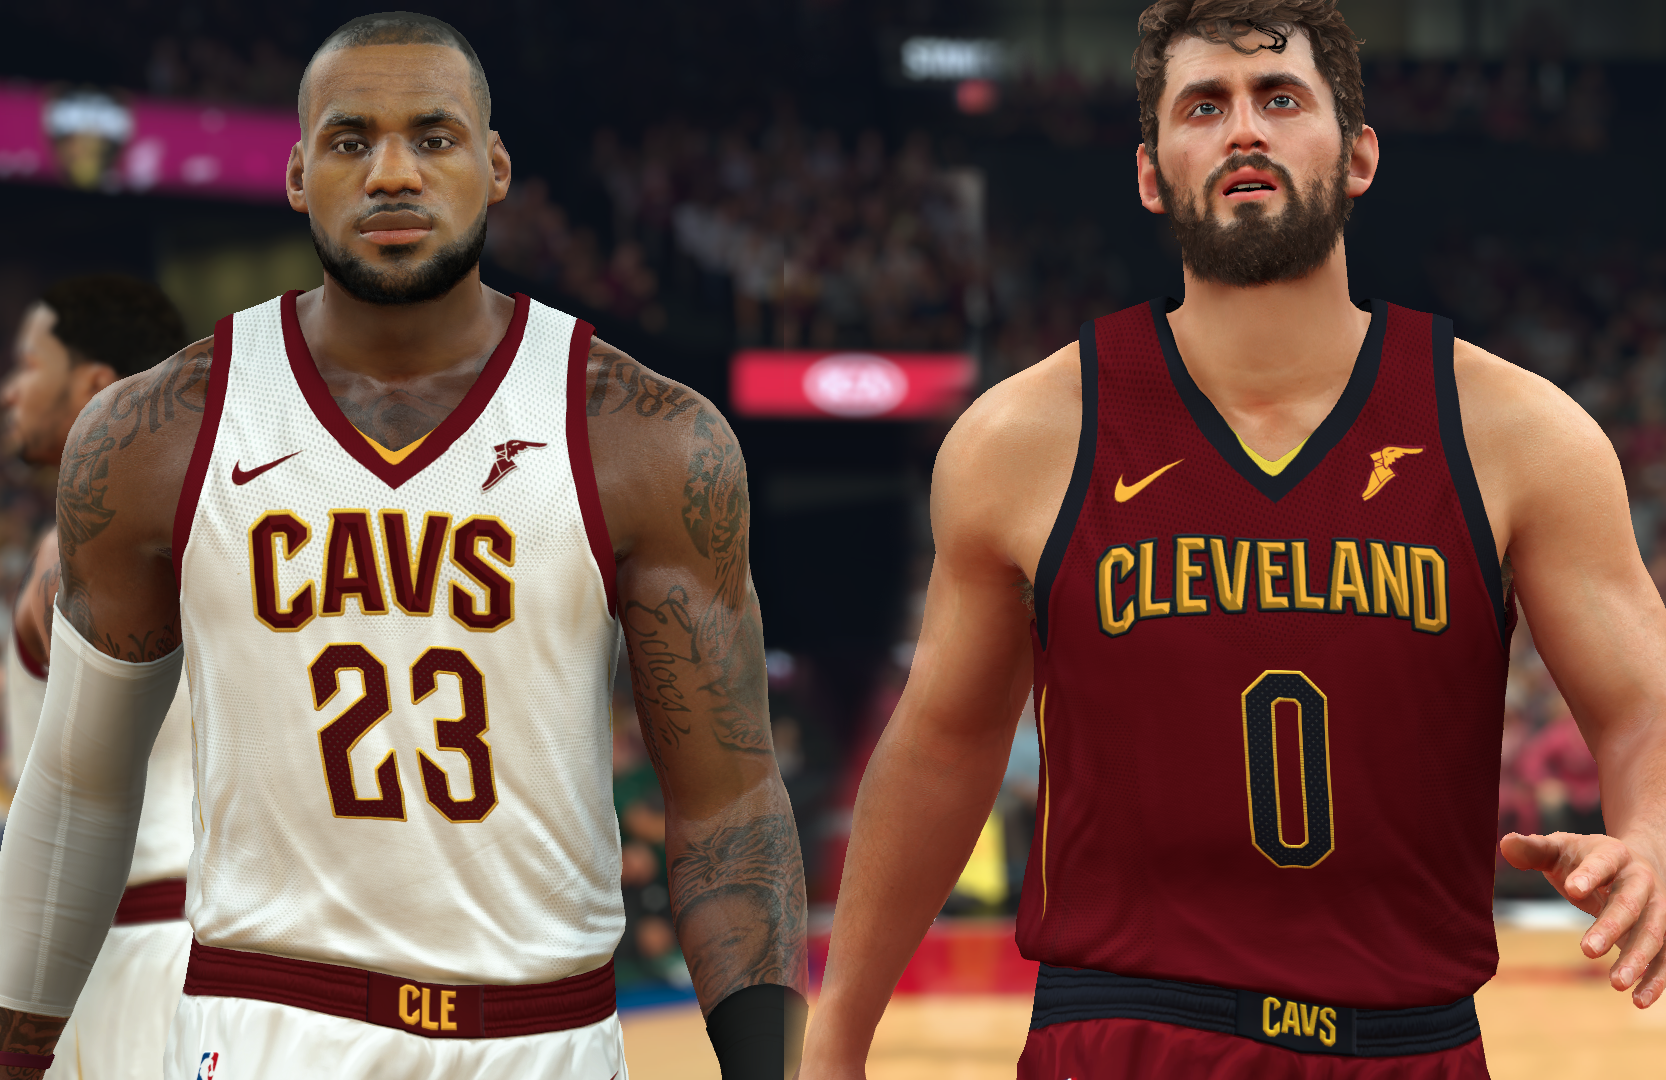 Cleveland Cavaliers Jersey 2017-18 (pinoy21)